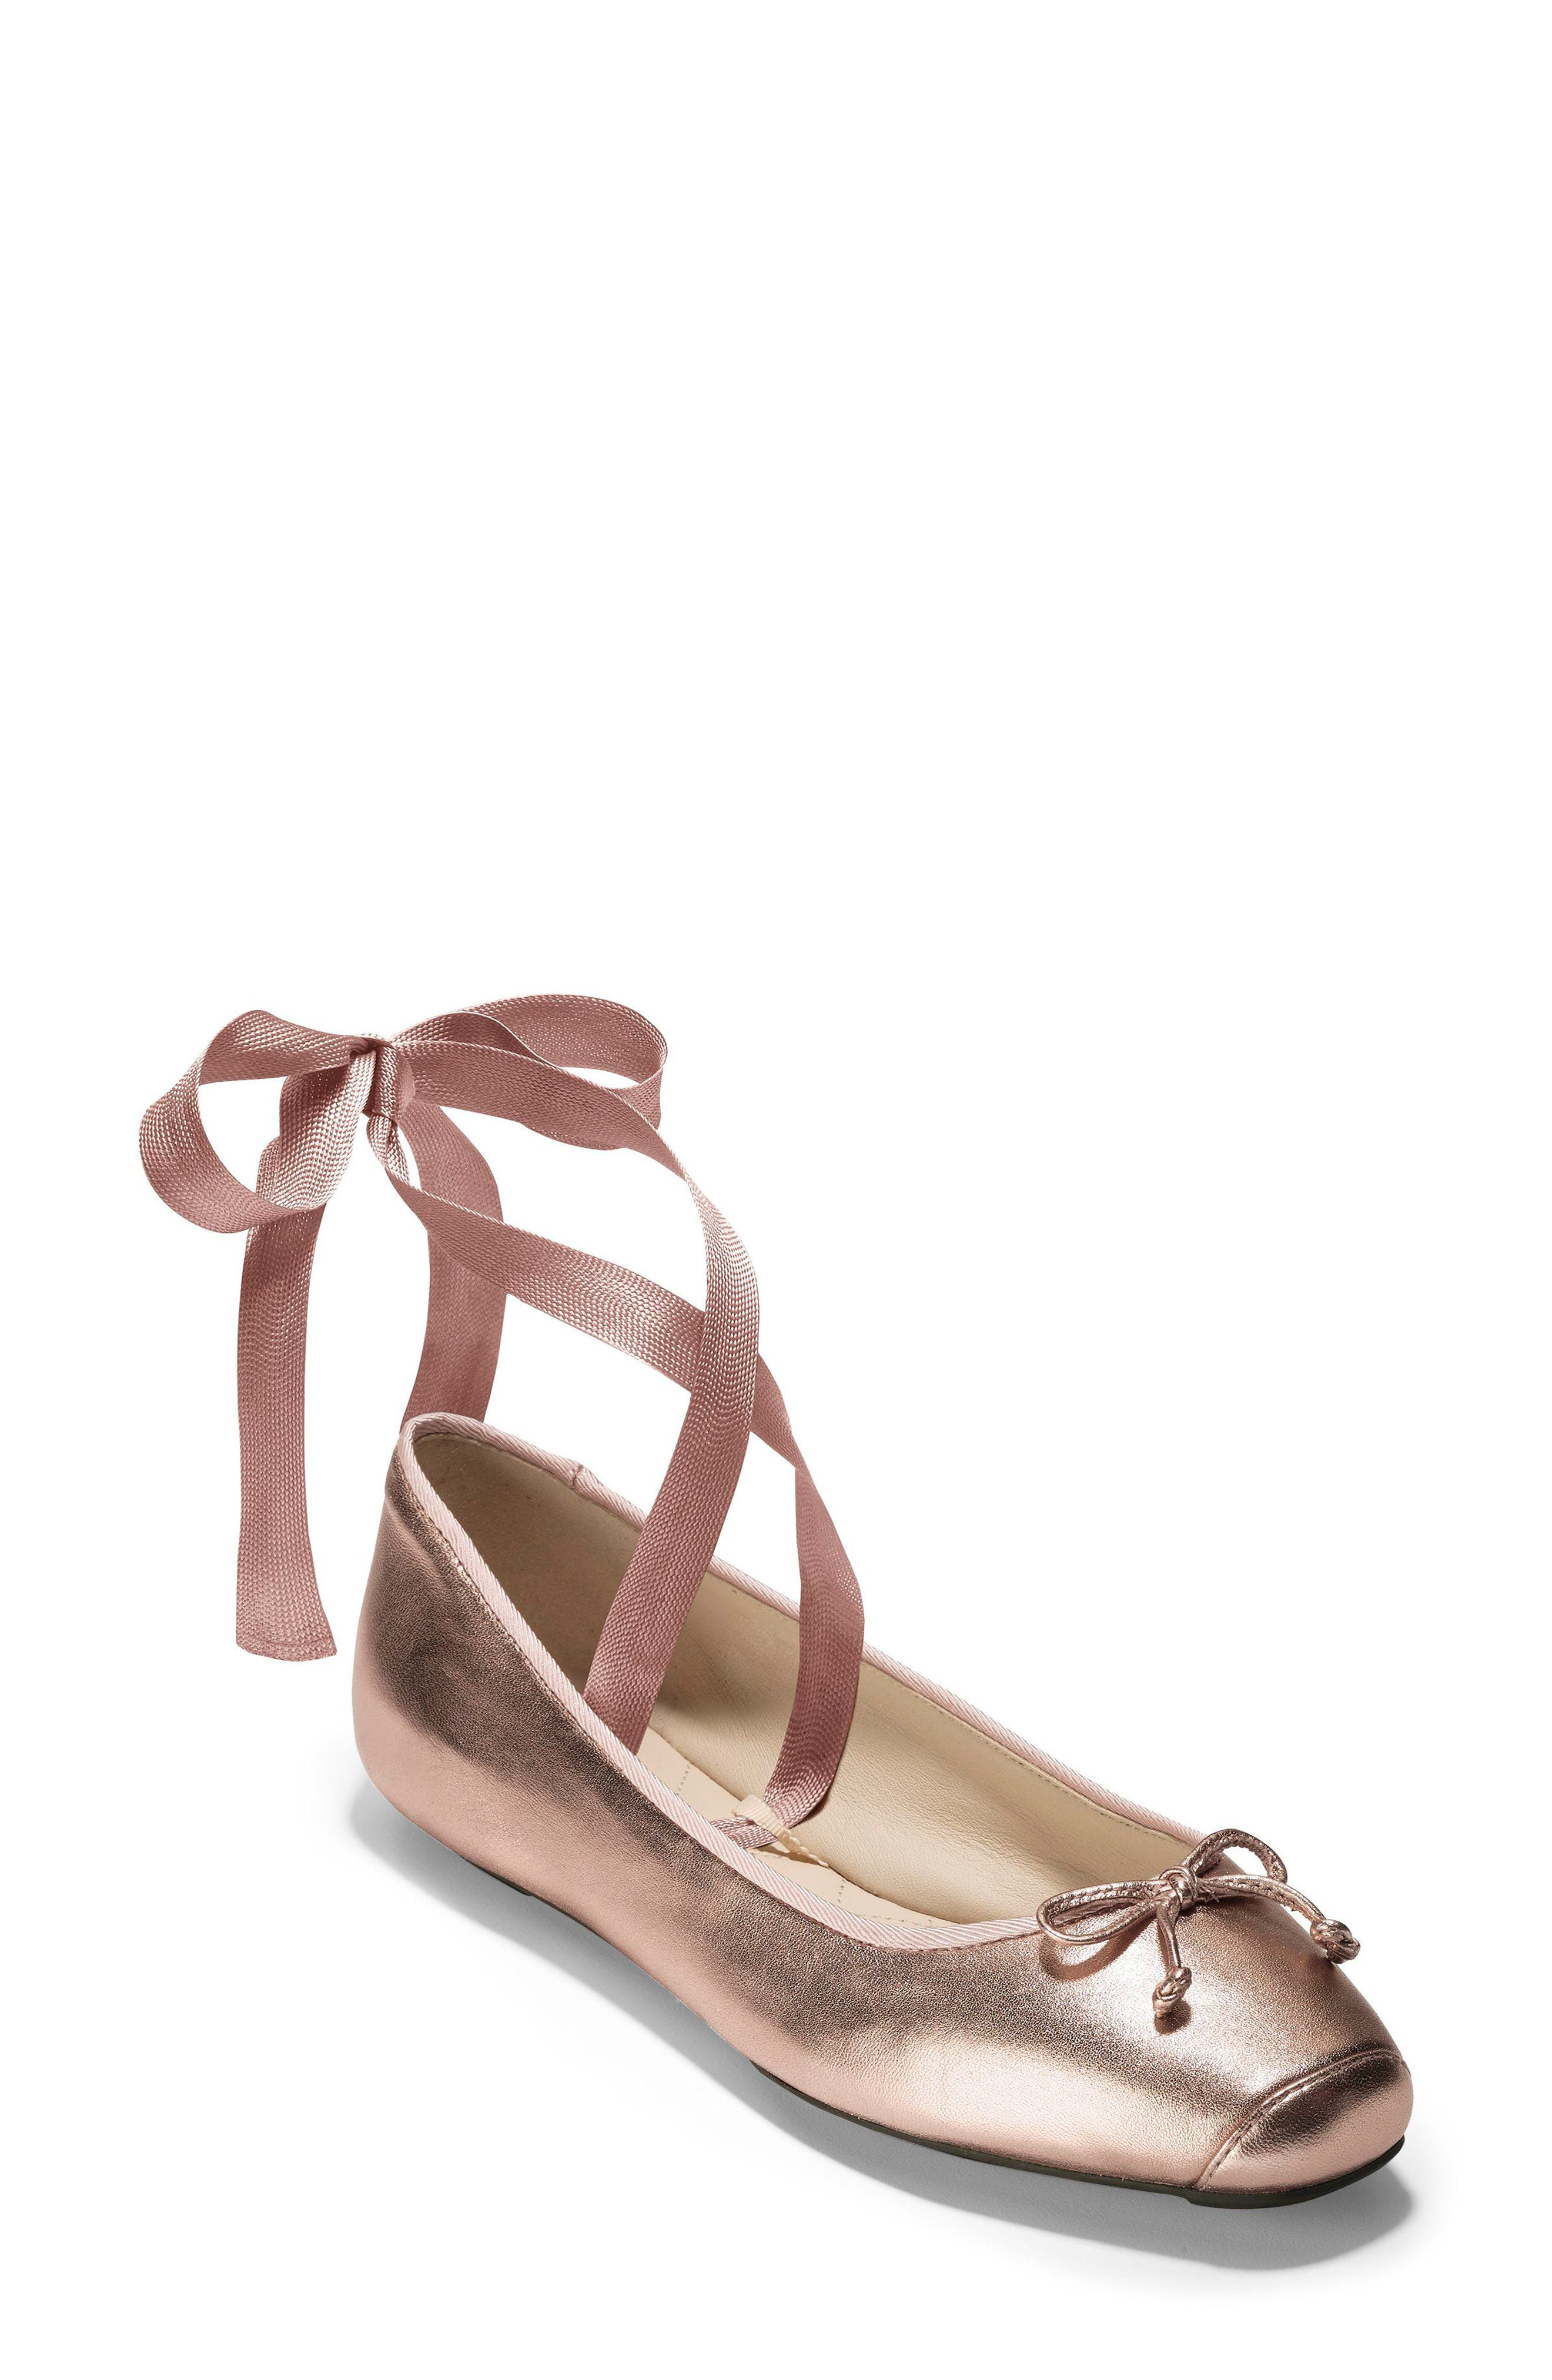 Downtown Ankle Wrap Ballet Flat,                         Main,                         color, Rose Gold Leather